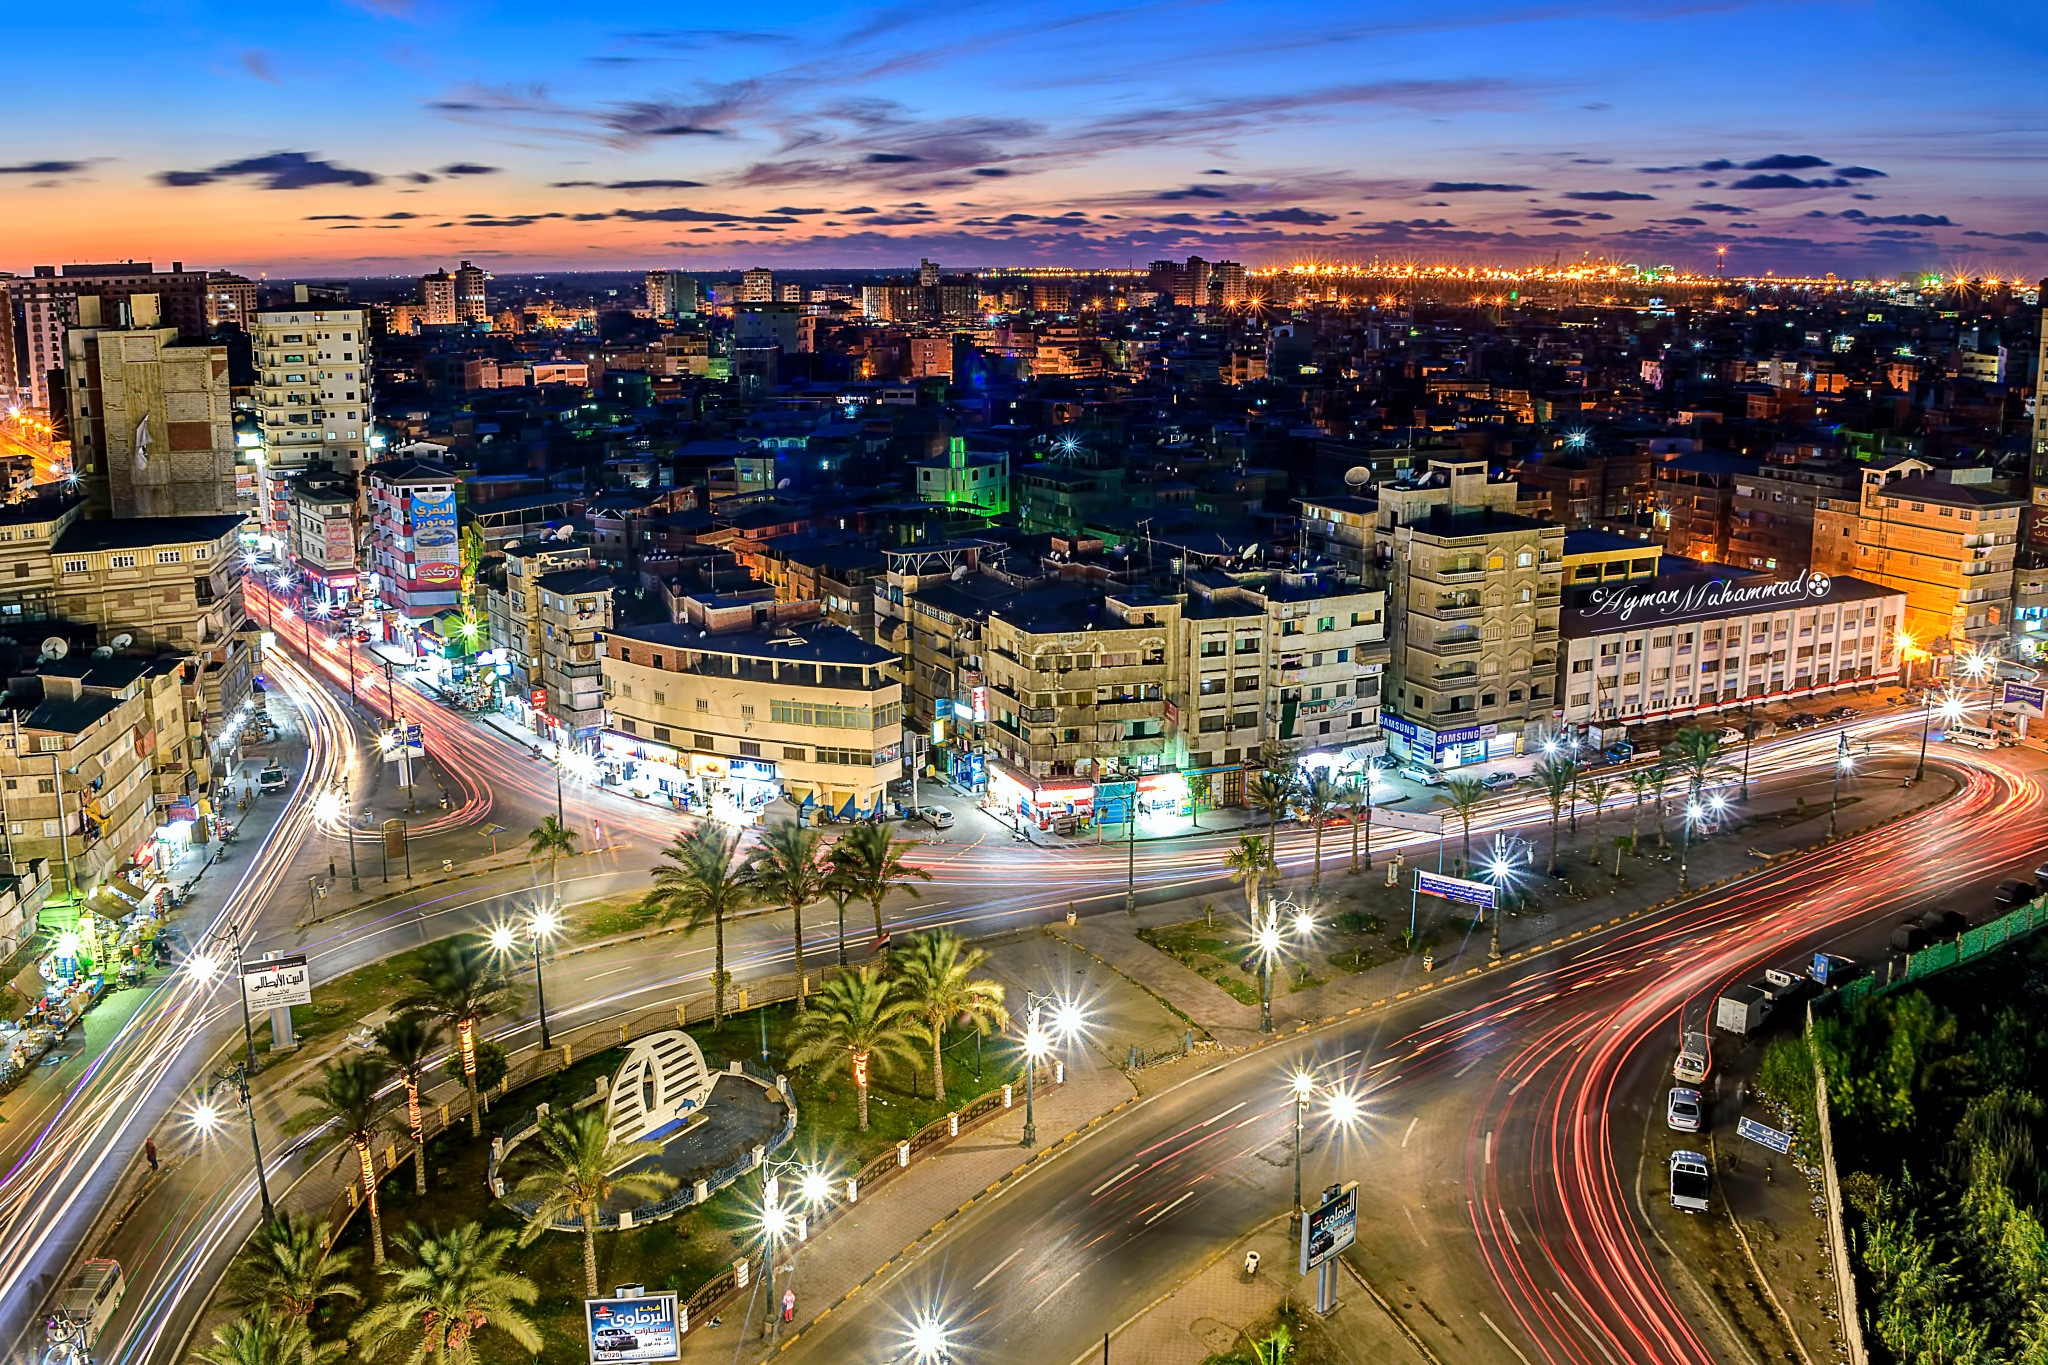 Streets of Damietta city at night from above +1 by AymanMuhammad